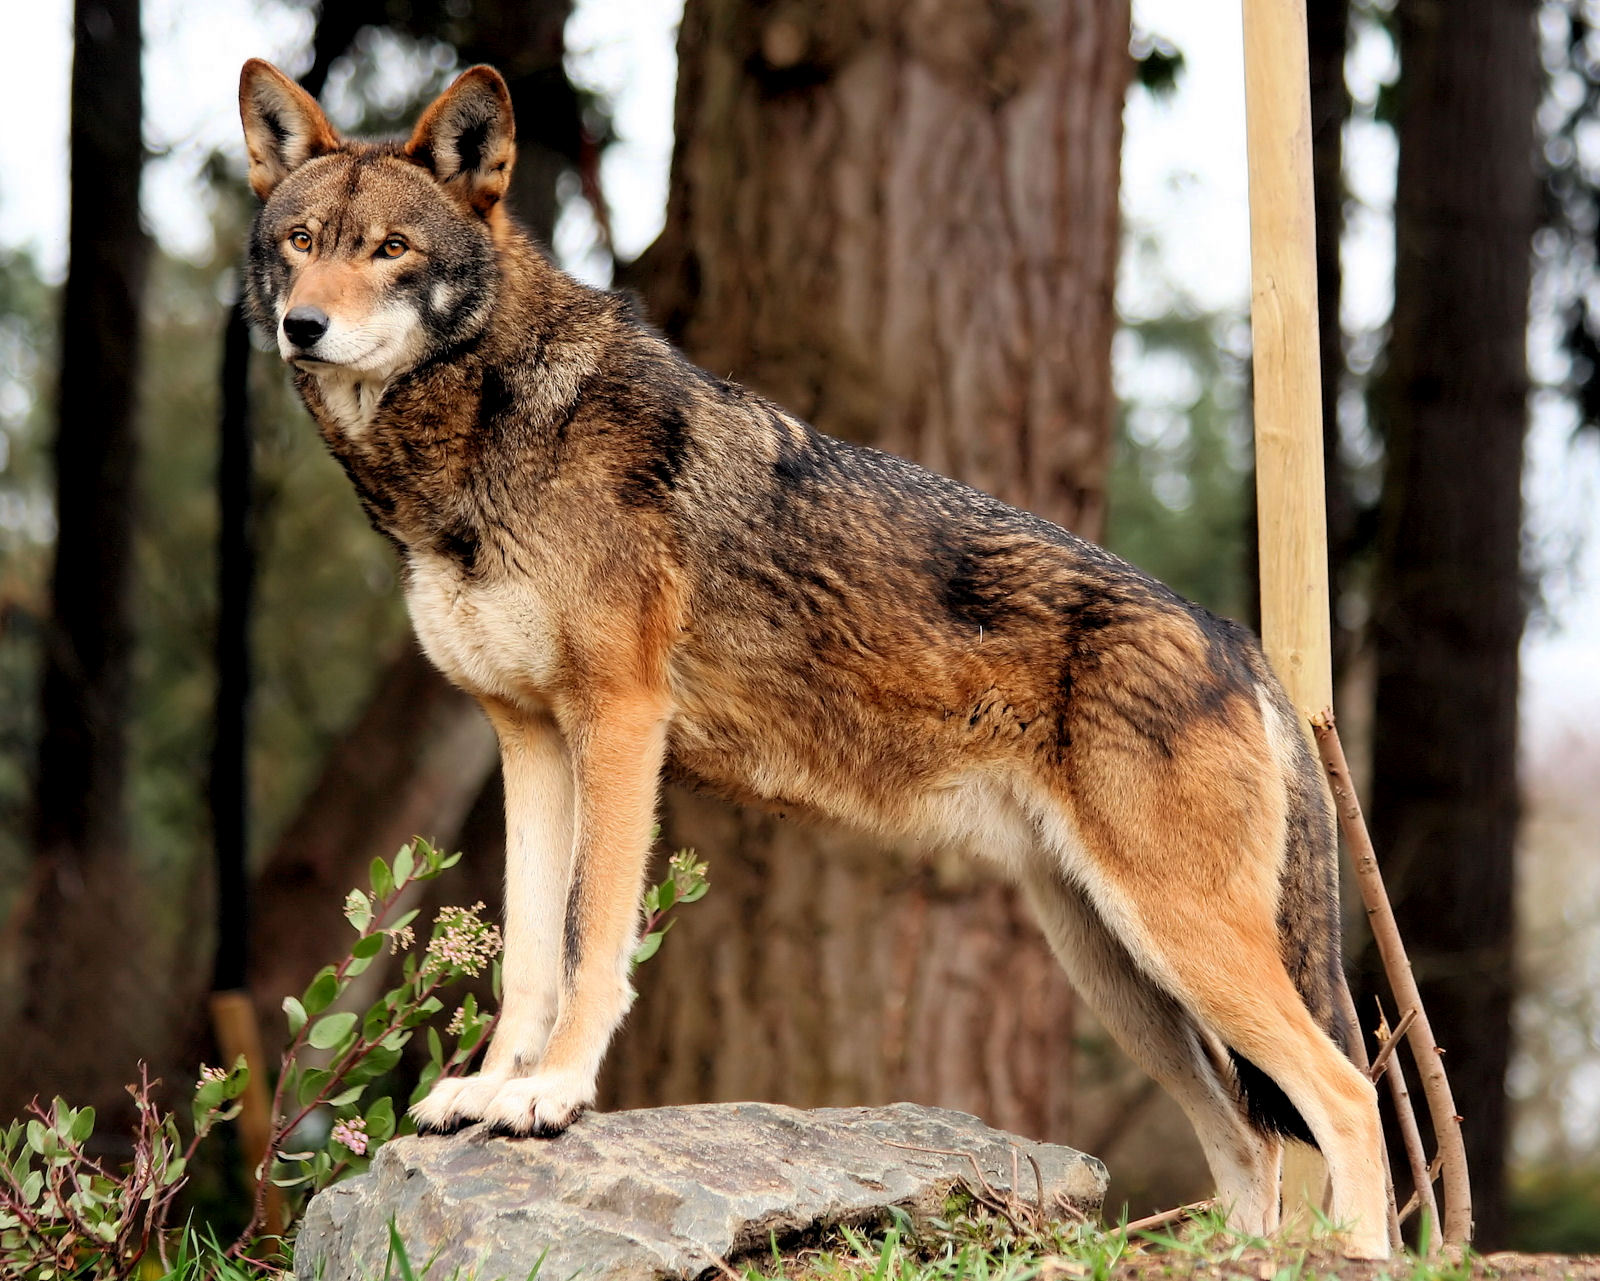 Petition to help save the red wolves